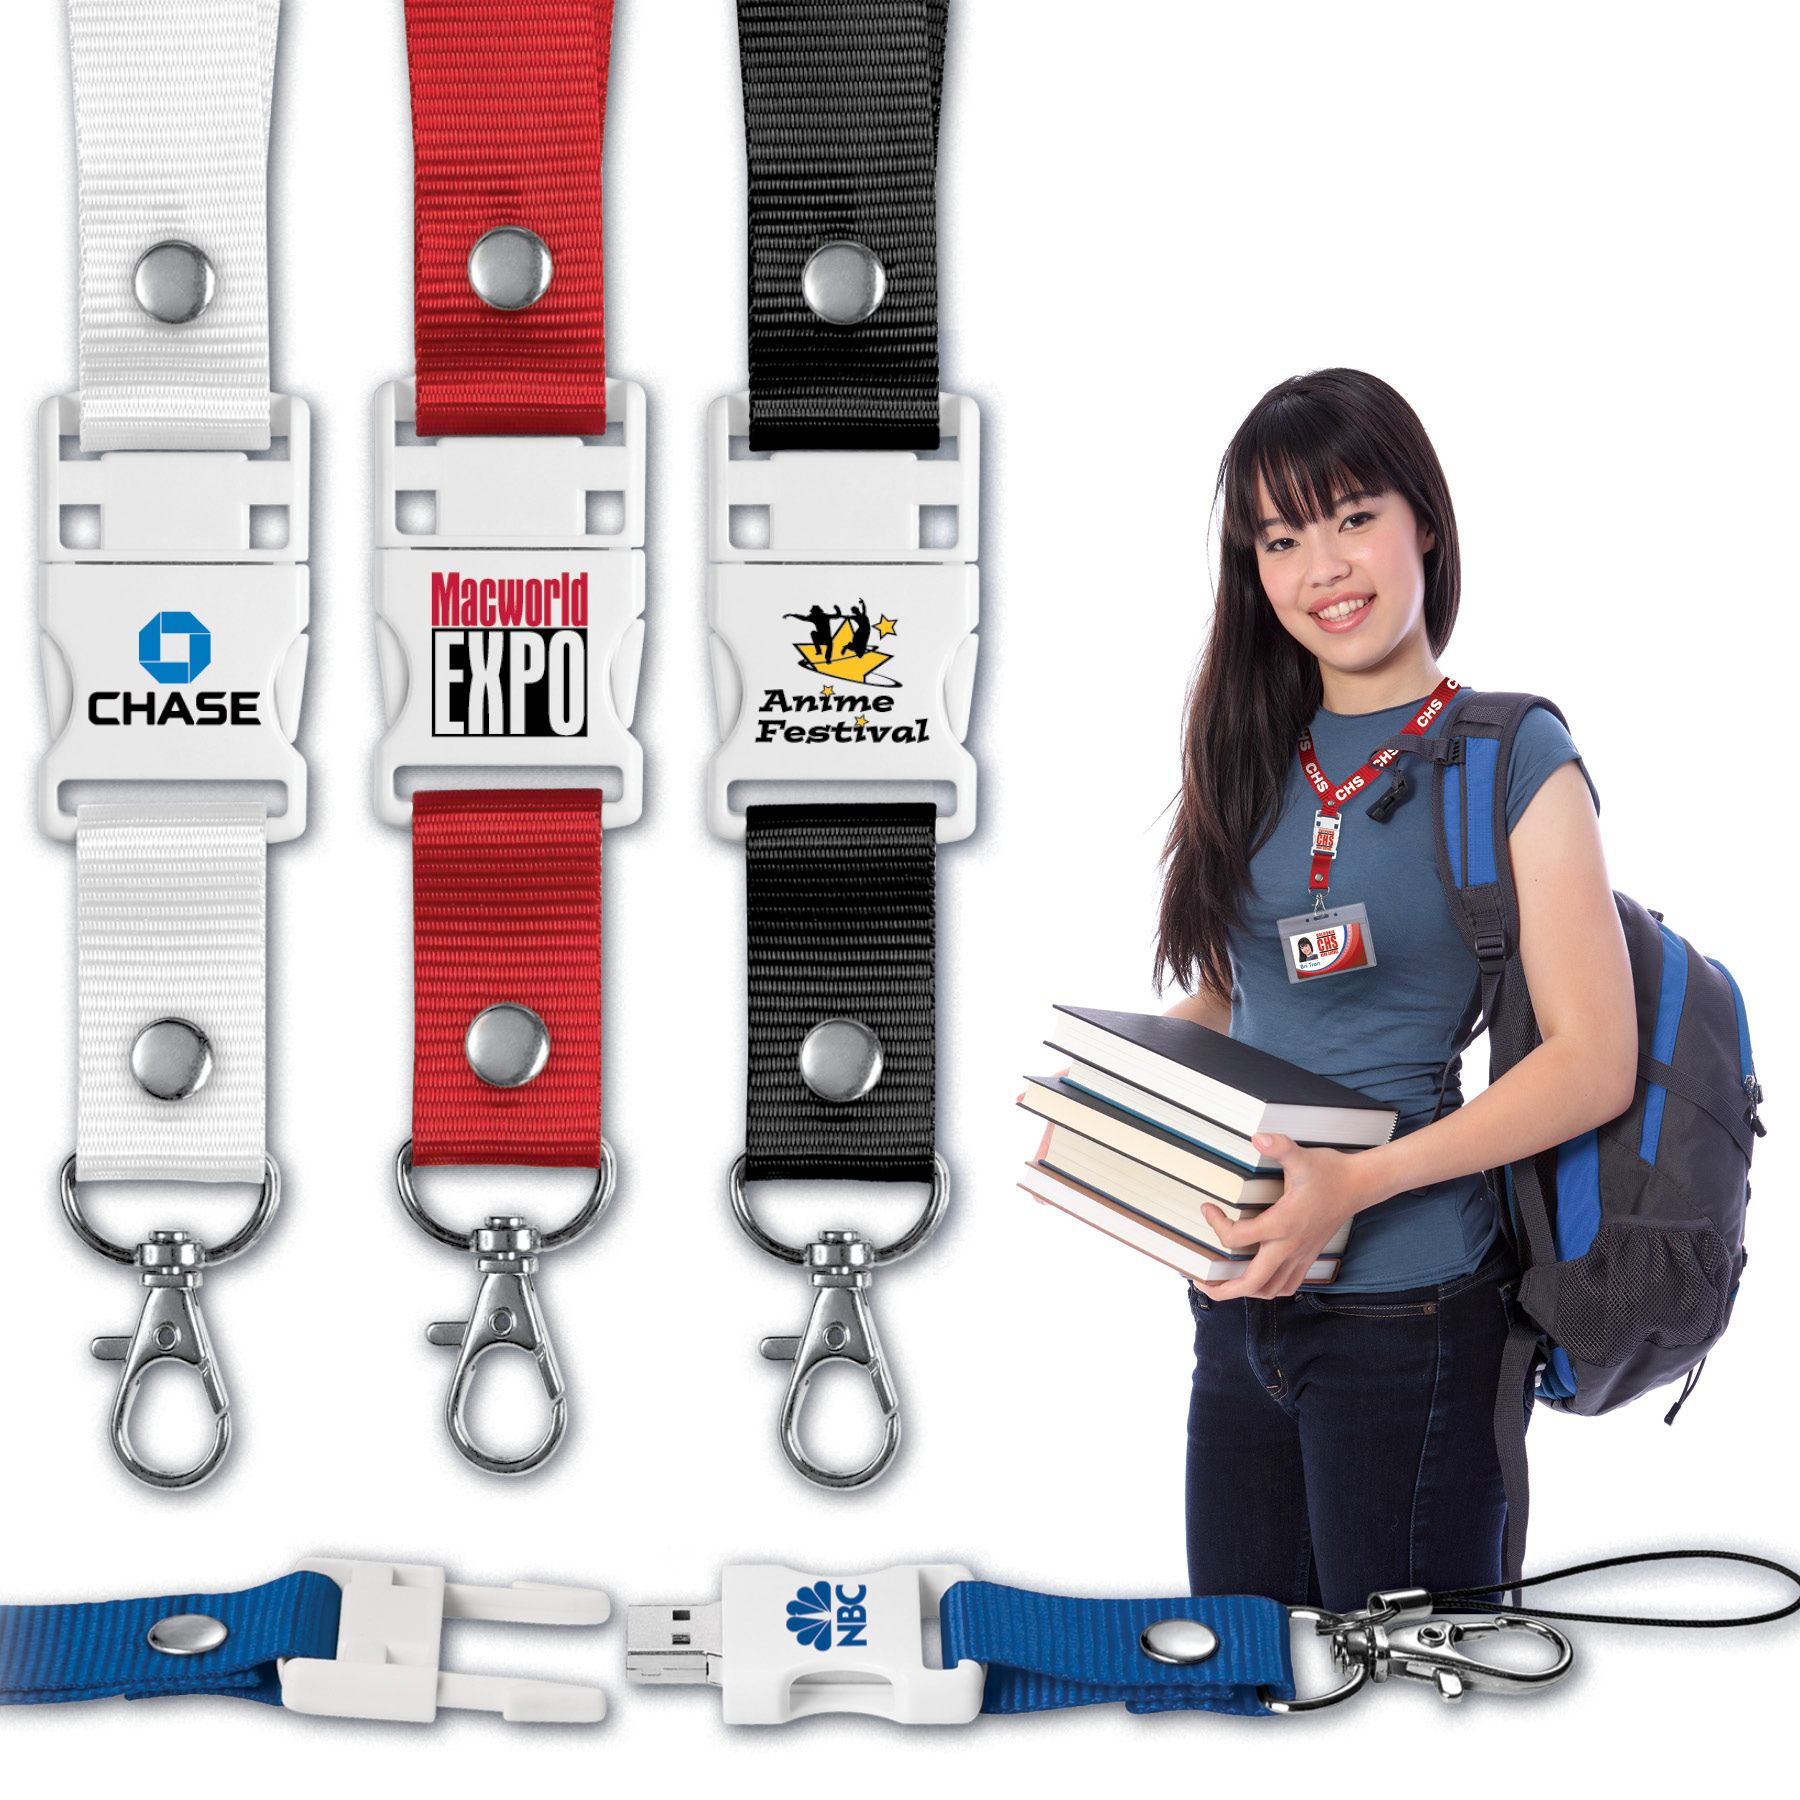 custom printed USB 2.0 lanyard flash drive